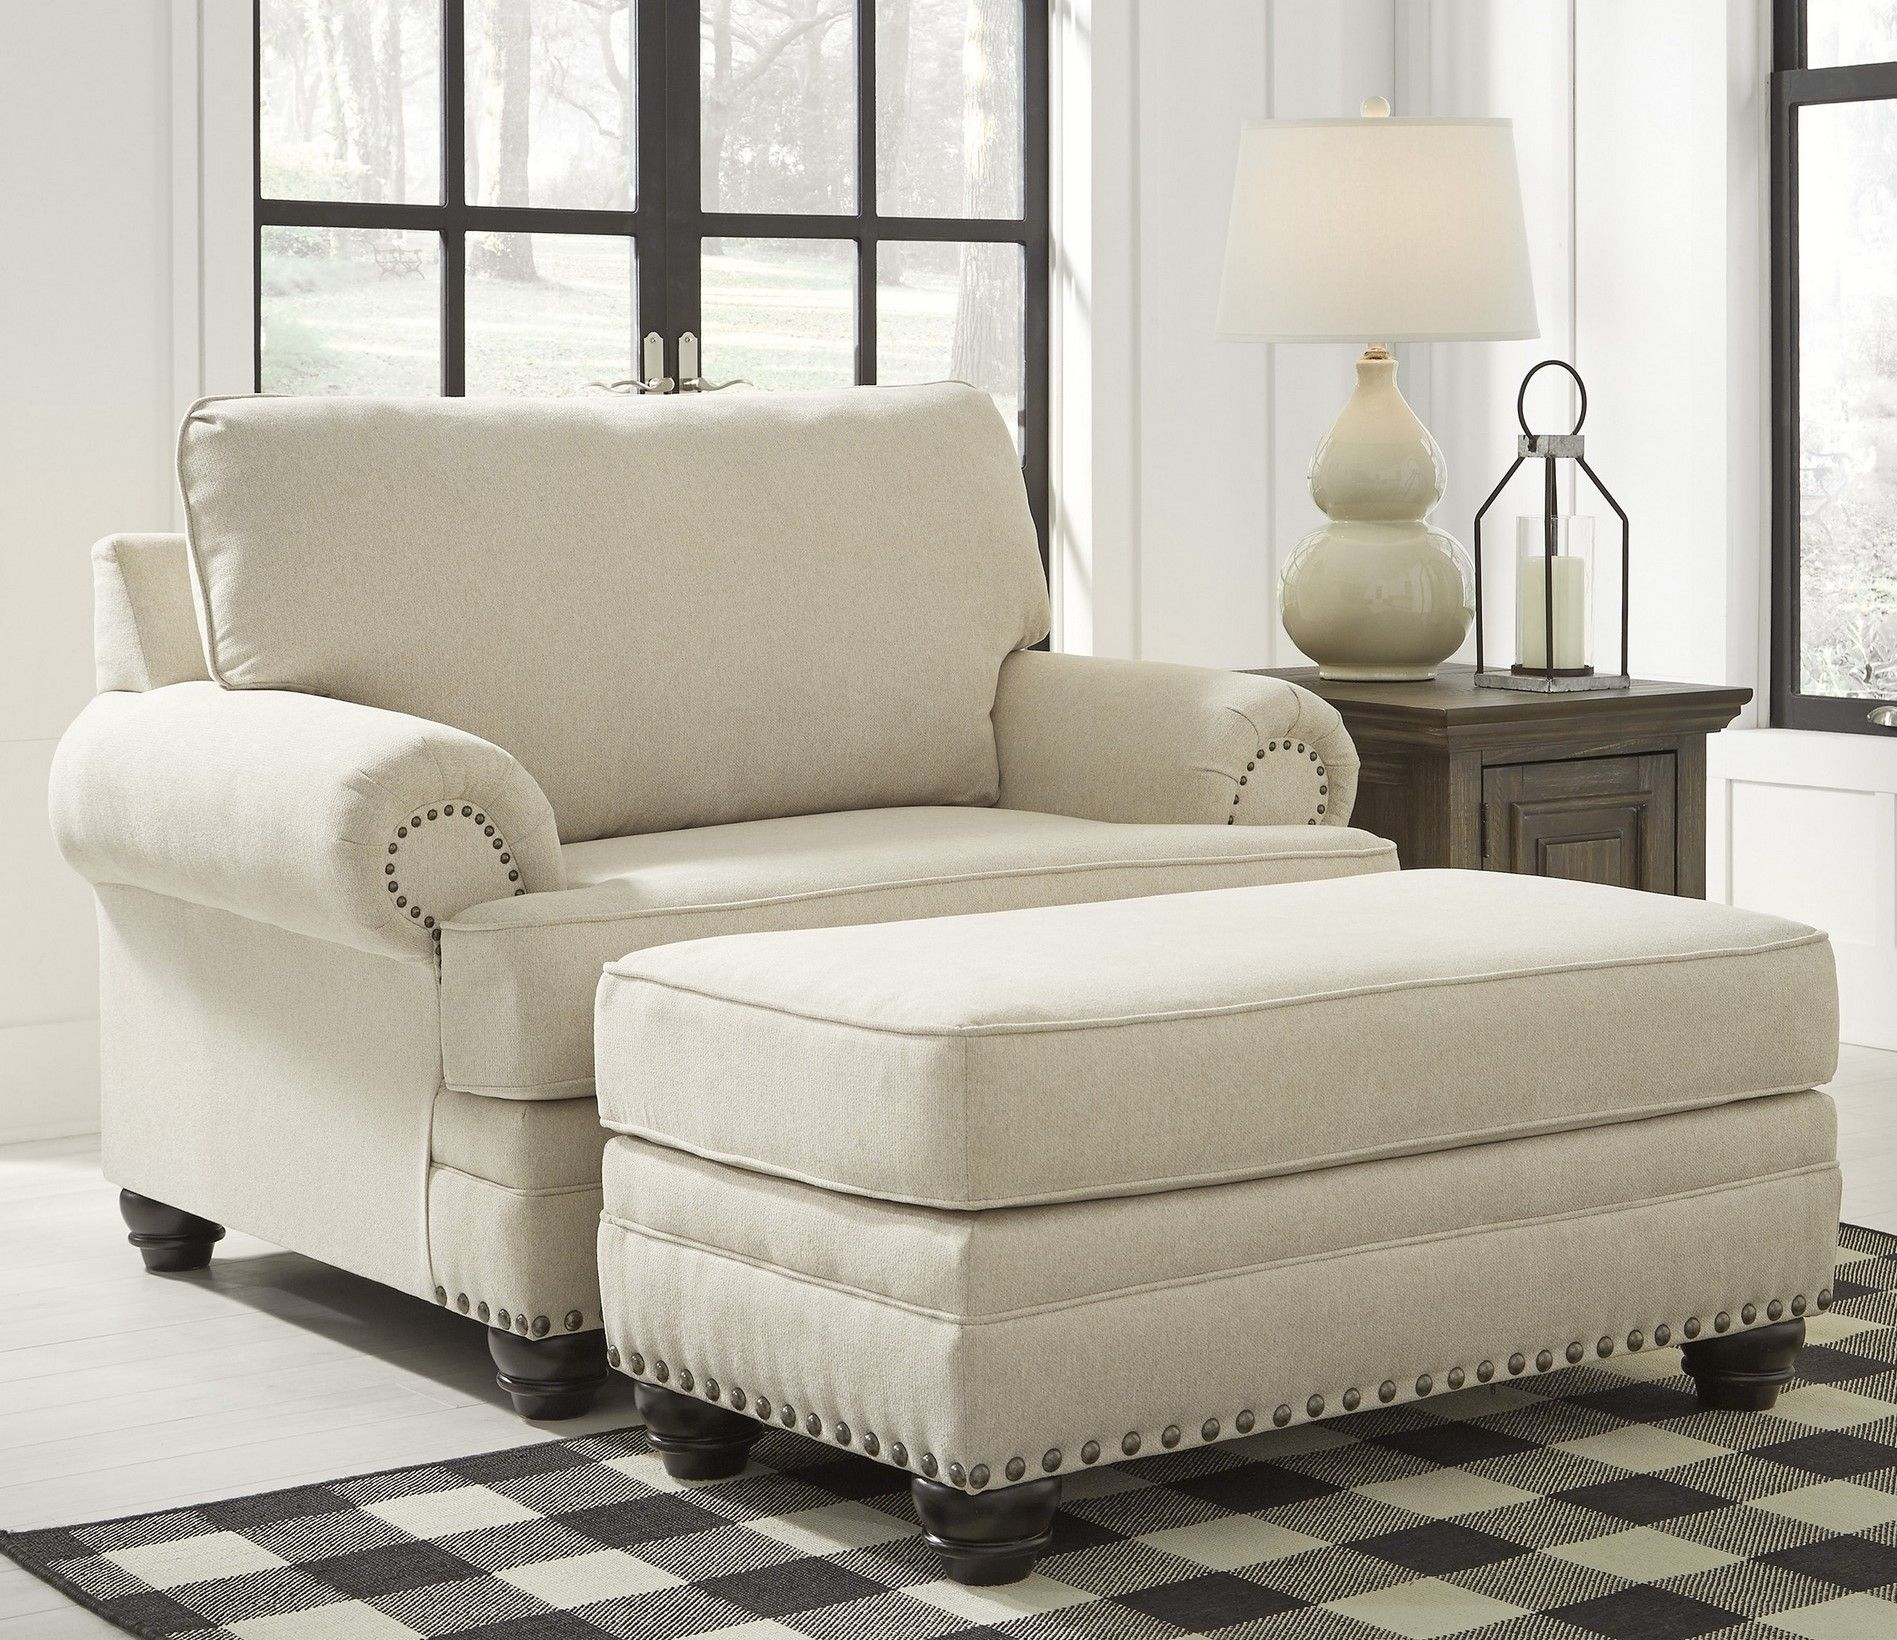 Harrietson Shell 2 Piece Chair And A Half Ottoman Set In 2020 Comfy Chairs Couches Living Comfortable Chair